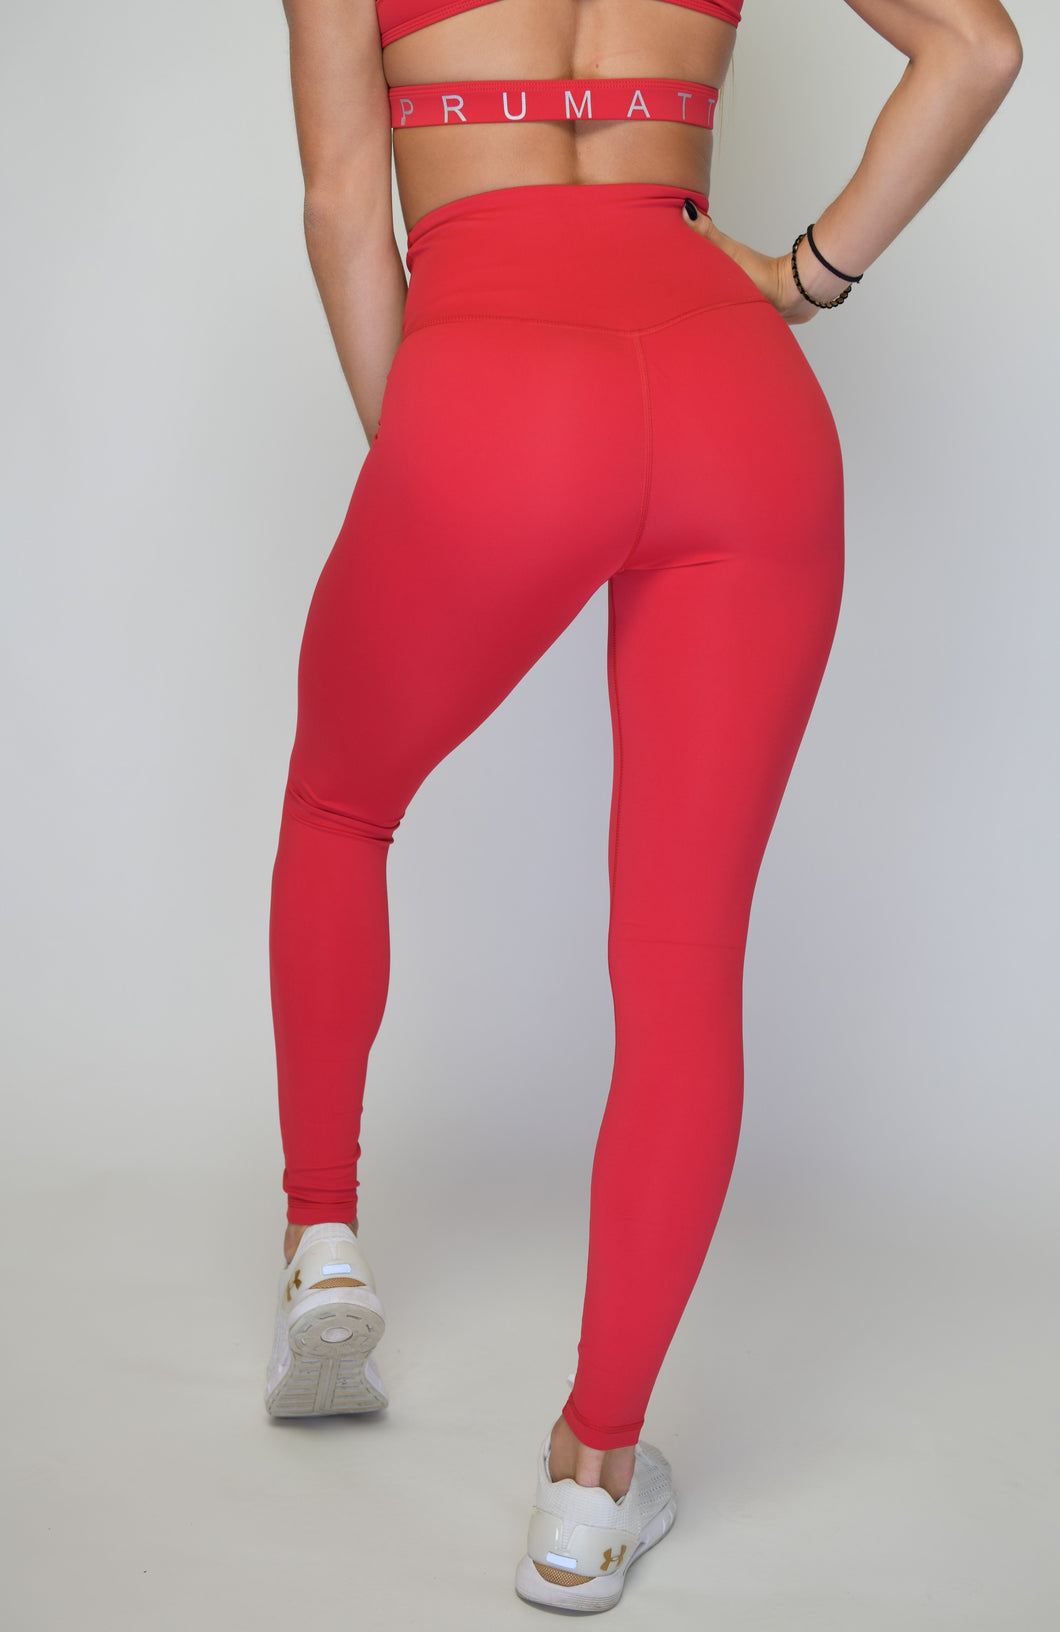 Women's Performance Stretch Bottoms High Rise | High Waist Leggings  | Jester Red